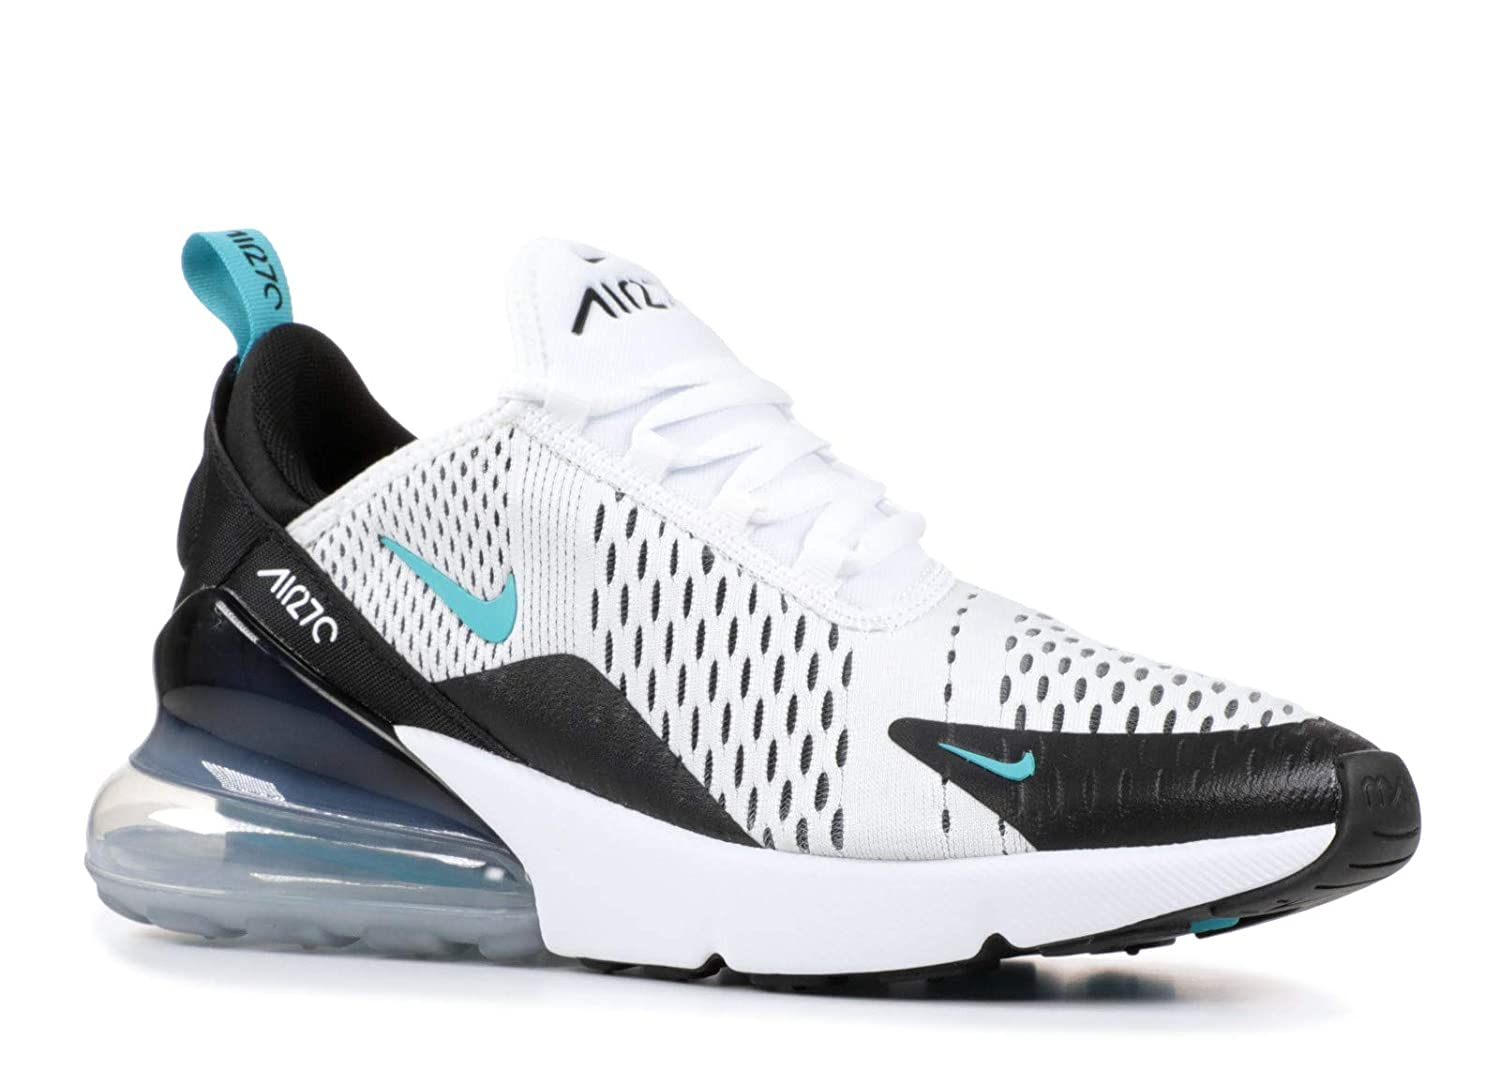 save off 9d68d 34069 NIKE Kid's Air Max 270 GS, White/Dusty Cactus-Black, Youth Size 7